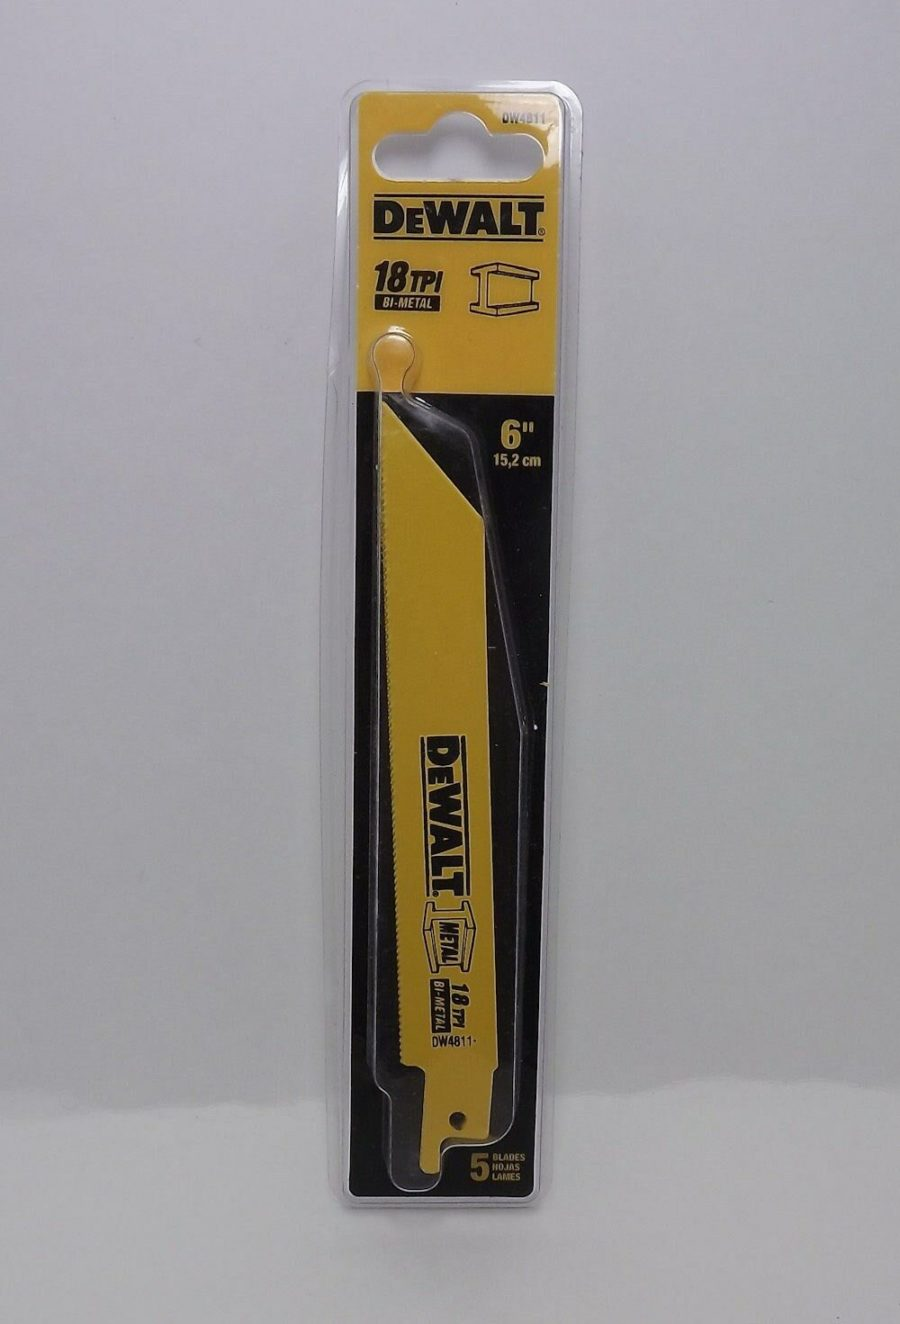 "Dewalt DW4811 Reciprocating 6"" Saw Blades 18 TPI NEW 5-Blade Pack 1"